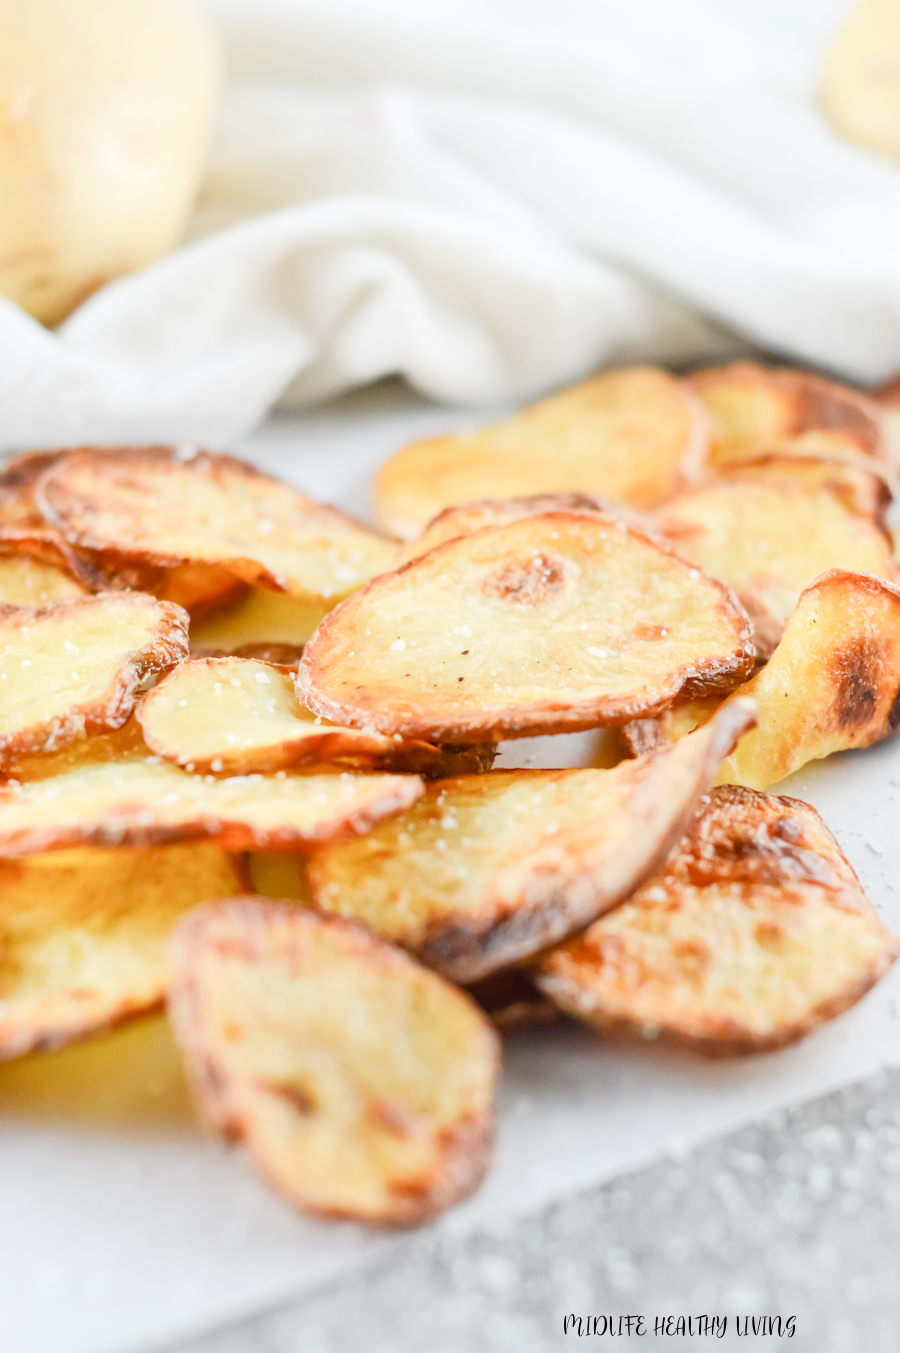 These delicious air fryer chips for weight watchers are finished and ready to be shared.